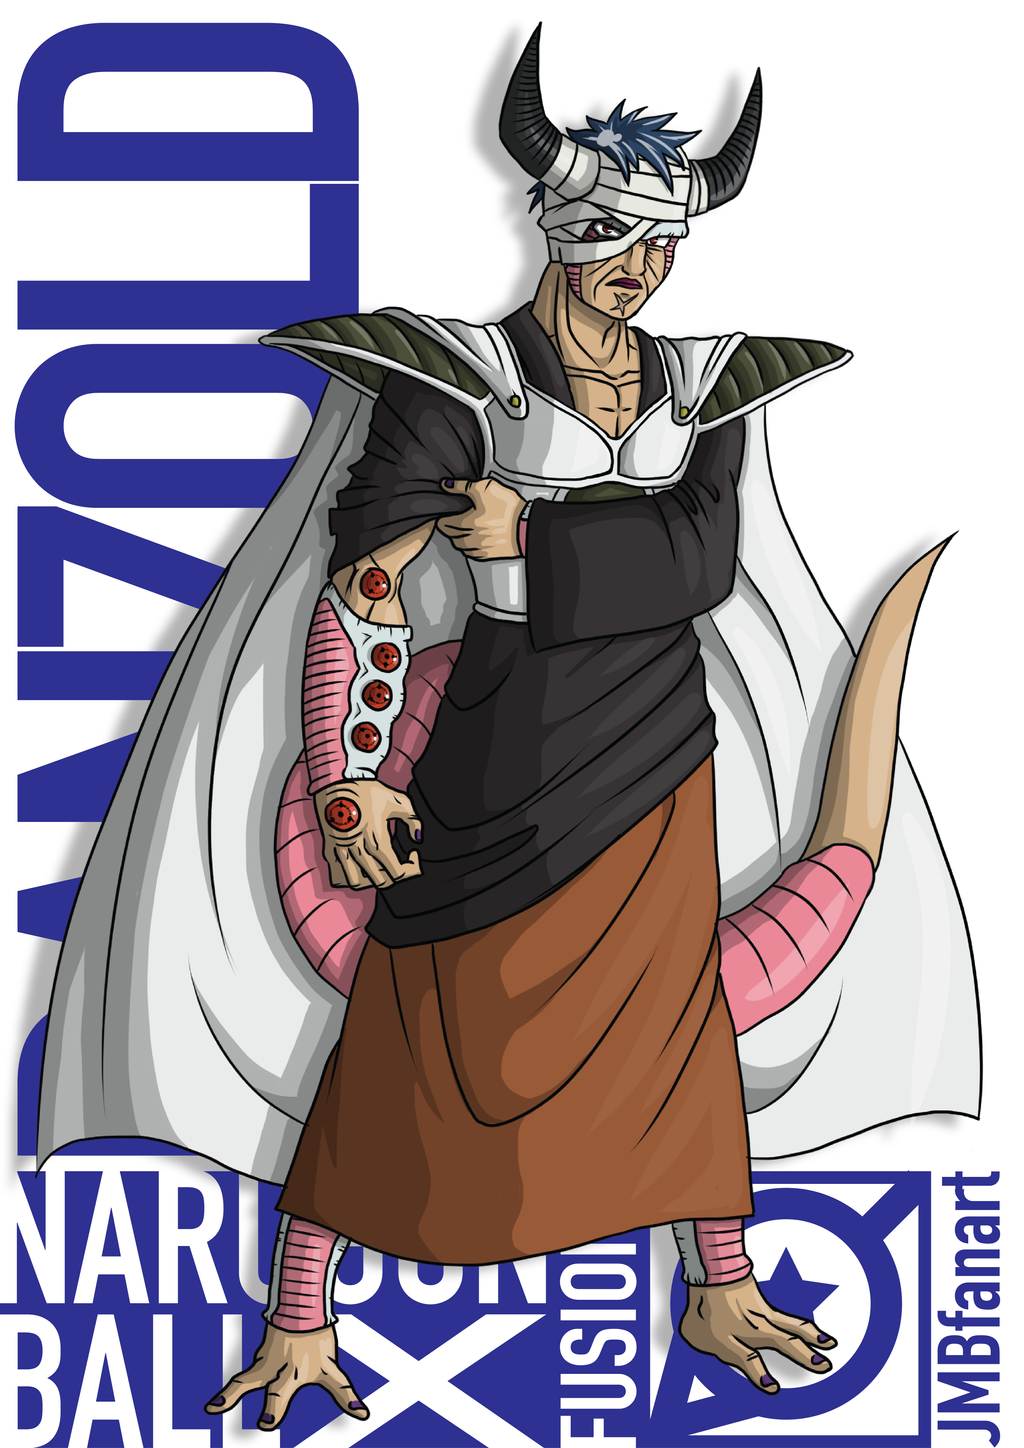 Danzold king cold and danzo fusion by jmbfanart on - Naruto and dragonball z ...